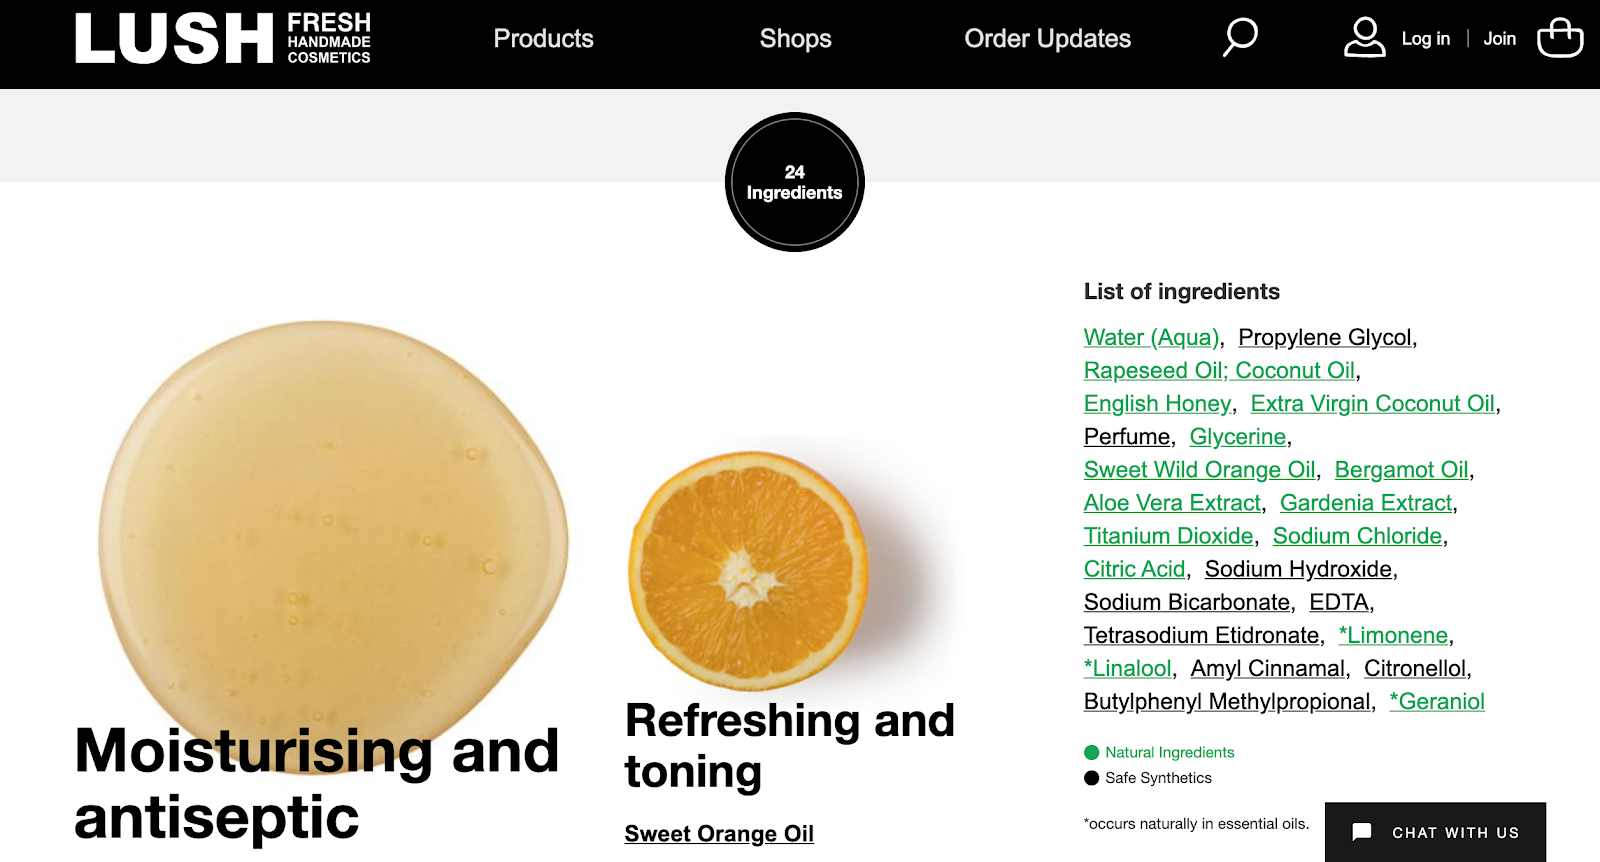 best product detail page examples lush